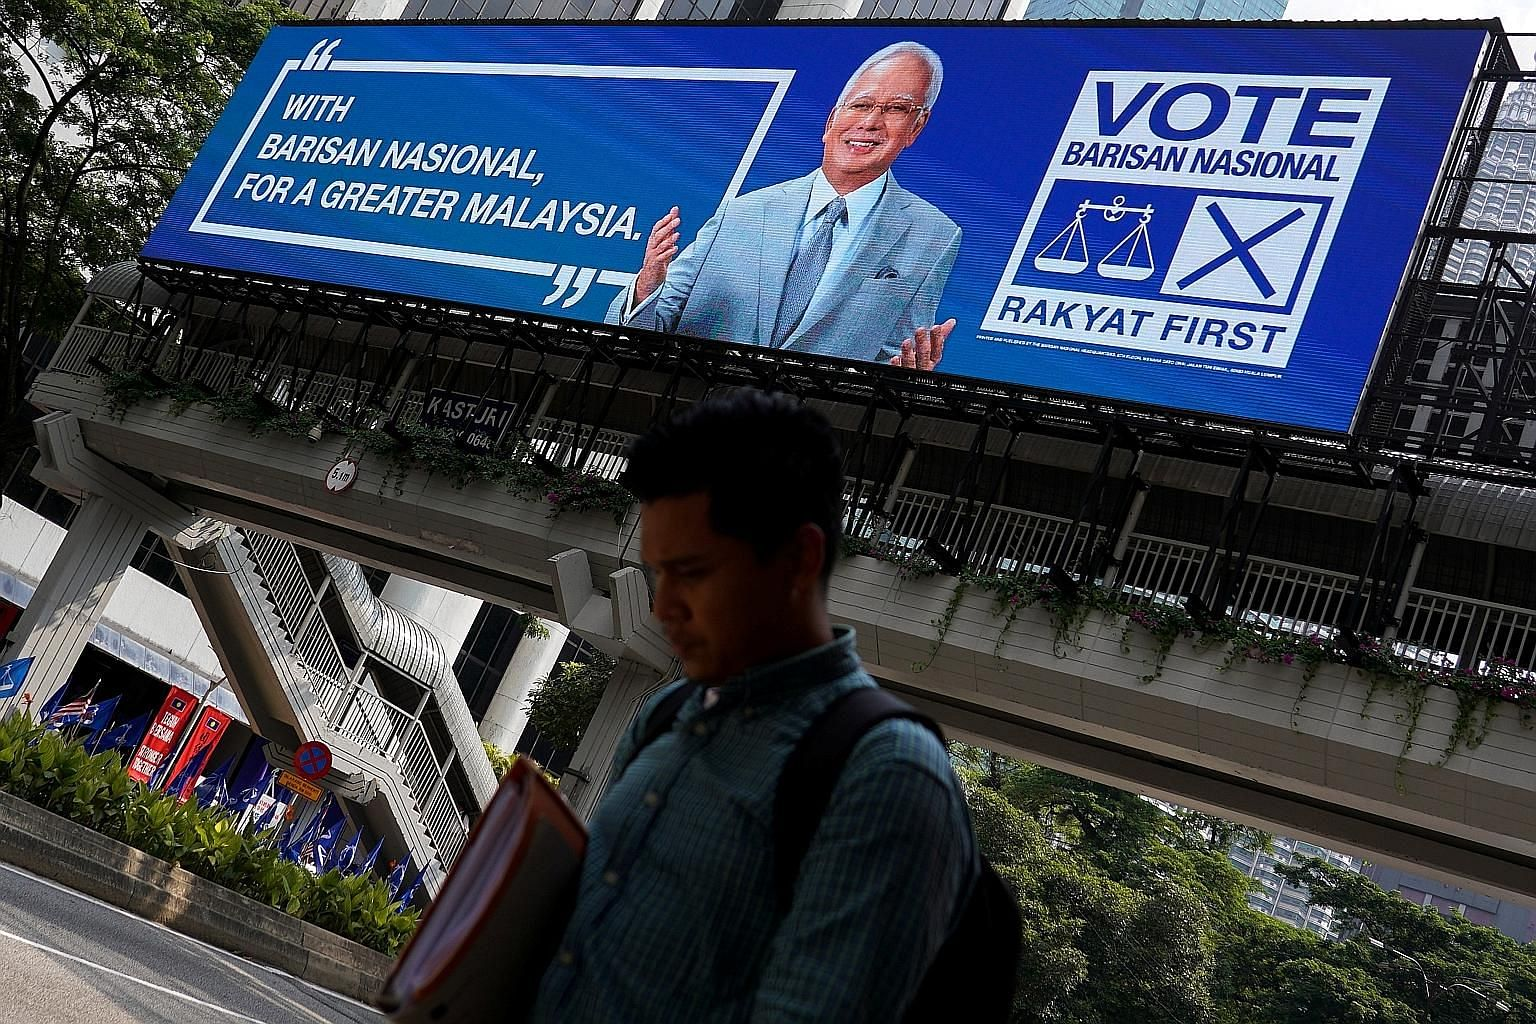 Malaysia's former prime minister Najib Razak and the Barisan Nasional featured on an election billboard this year. BN was popular as a broad-based coalition representing all communities but support waned amid claims of corruption and rising racial te